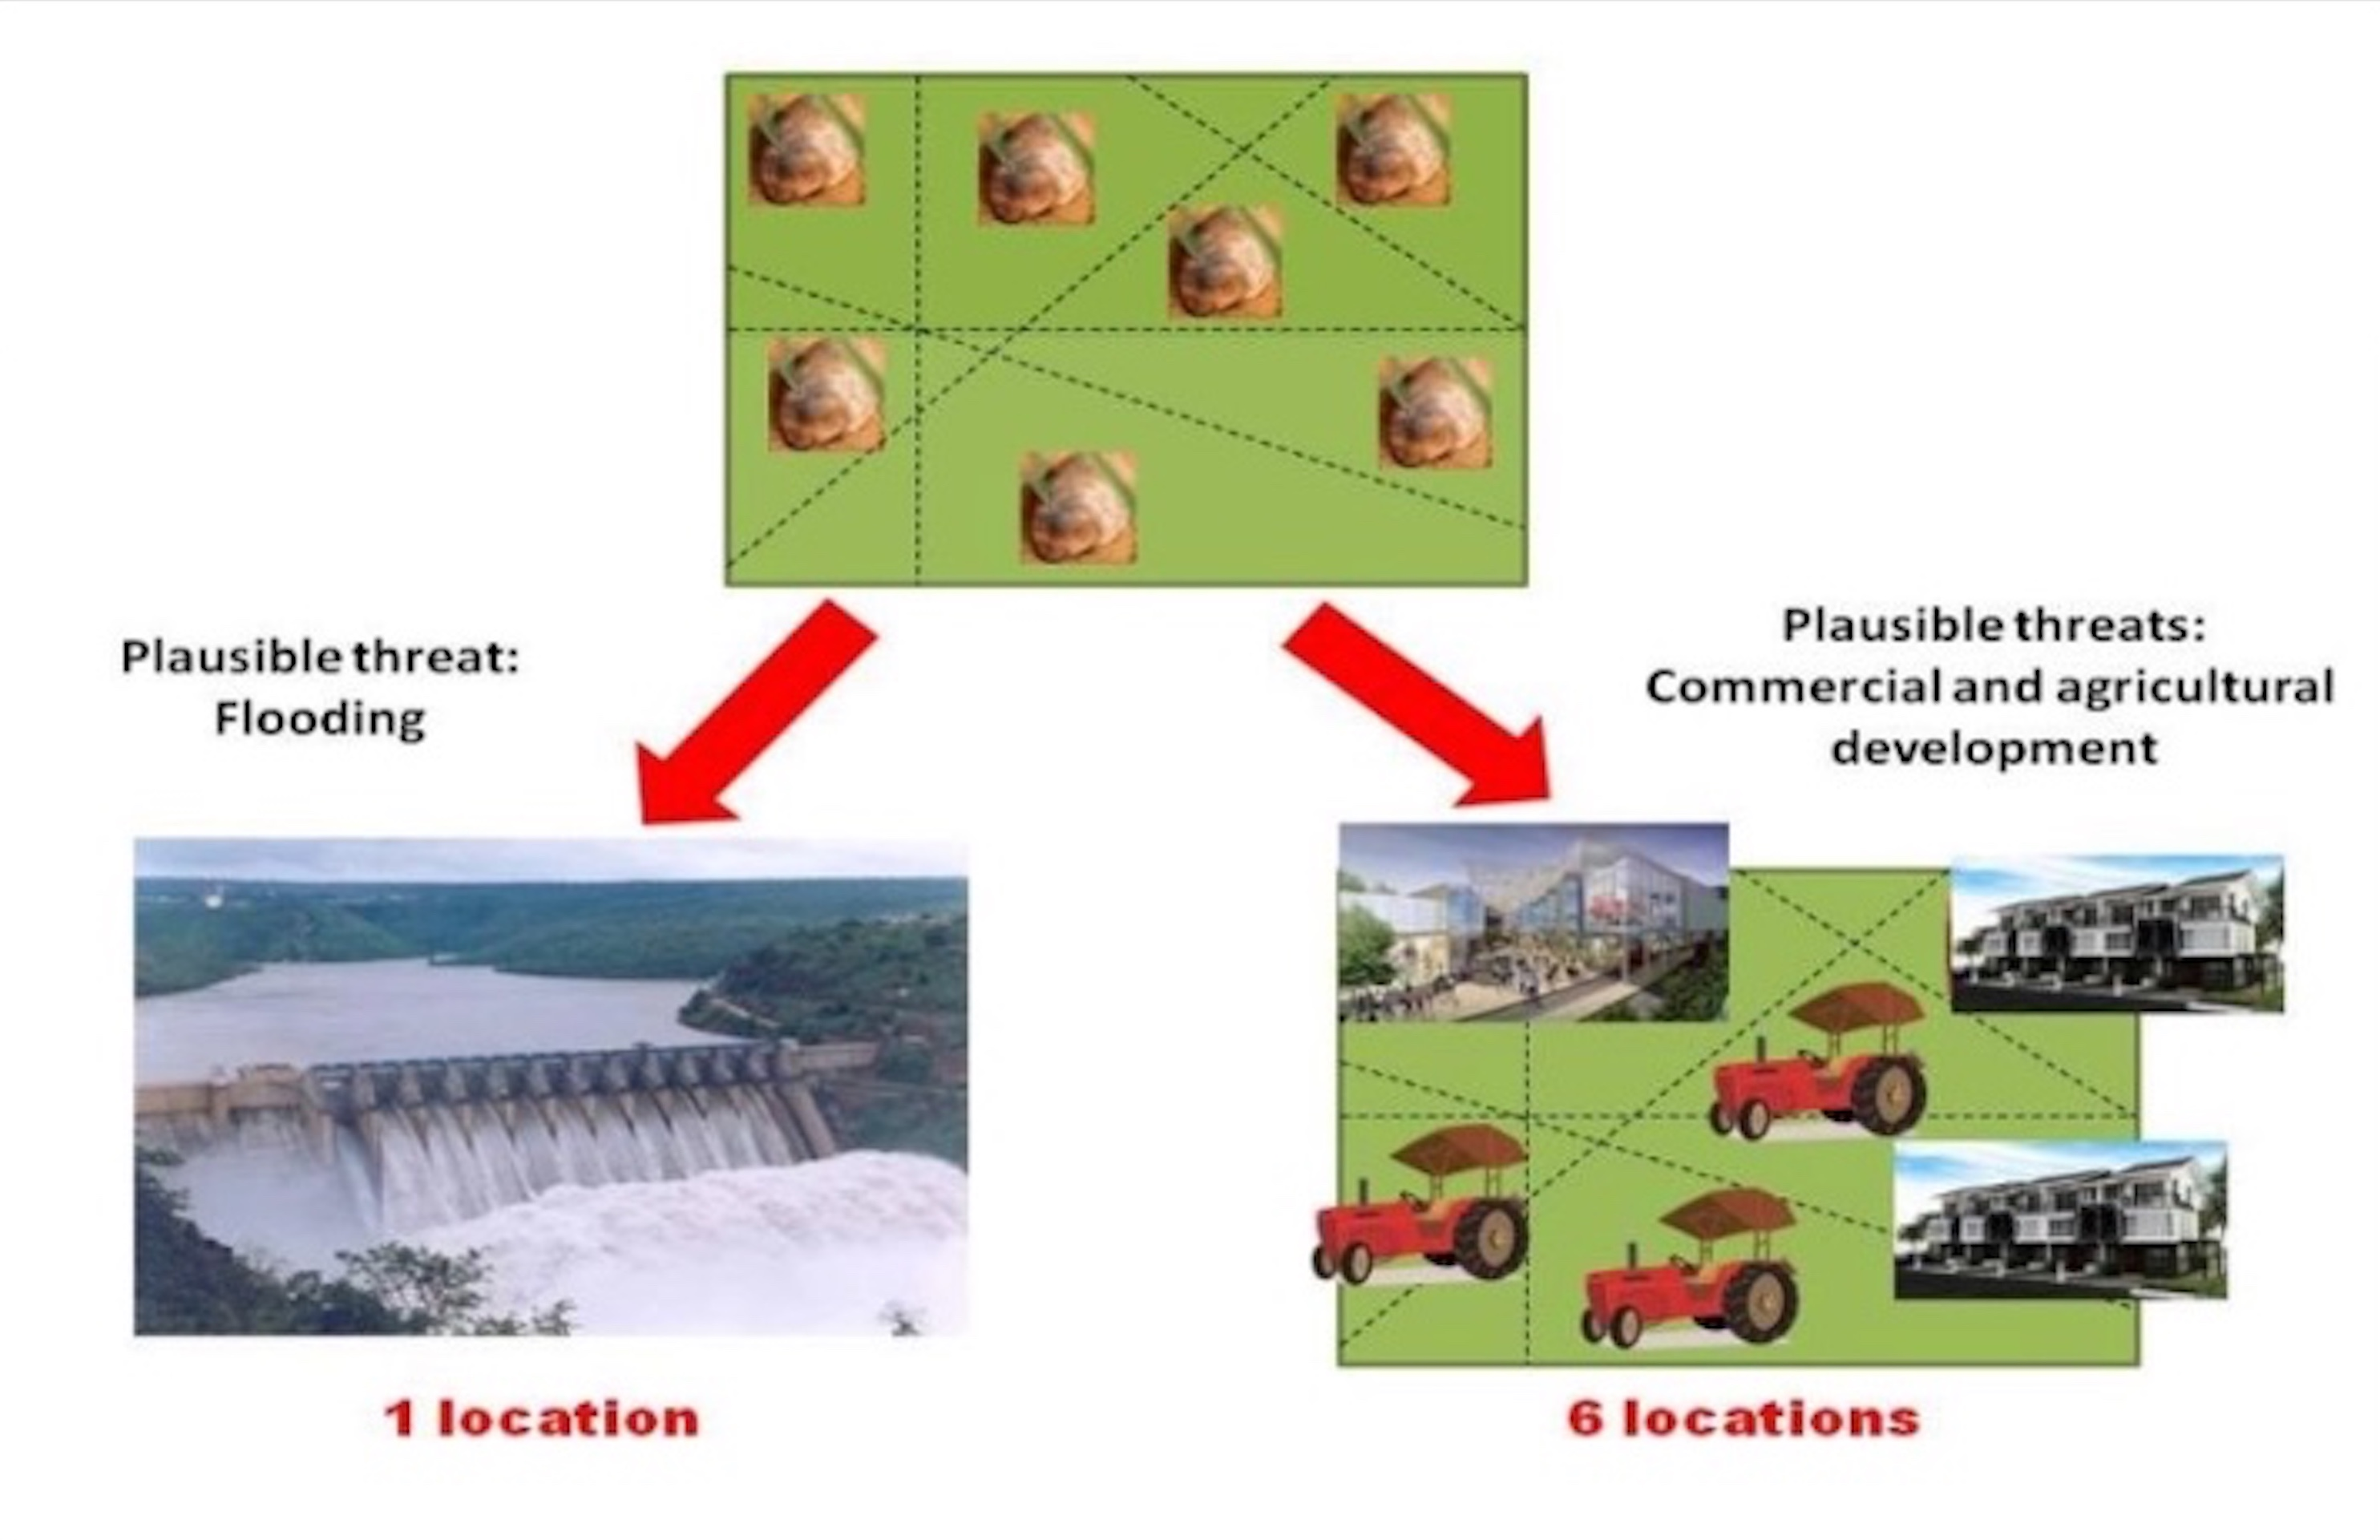 Fig. 3: The last seven remaining subpopulations of a golden gole species exist in fields within the same region (< 100 km2) but isolated from each other by a matrix of unsuitable habitat. If the most plausible threat is a dam that will flood the region and drown all subpopulations, this is considered one location and may qualify for Critically Endangered under B1ab(i).